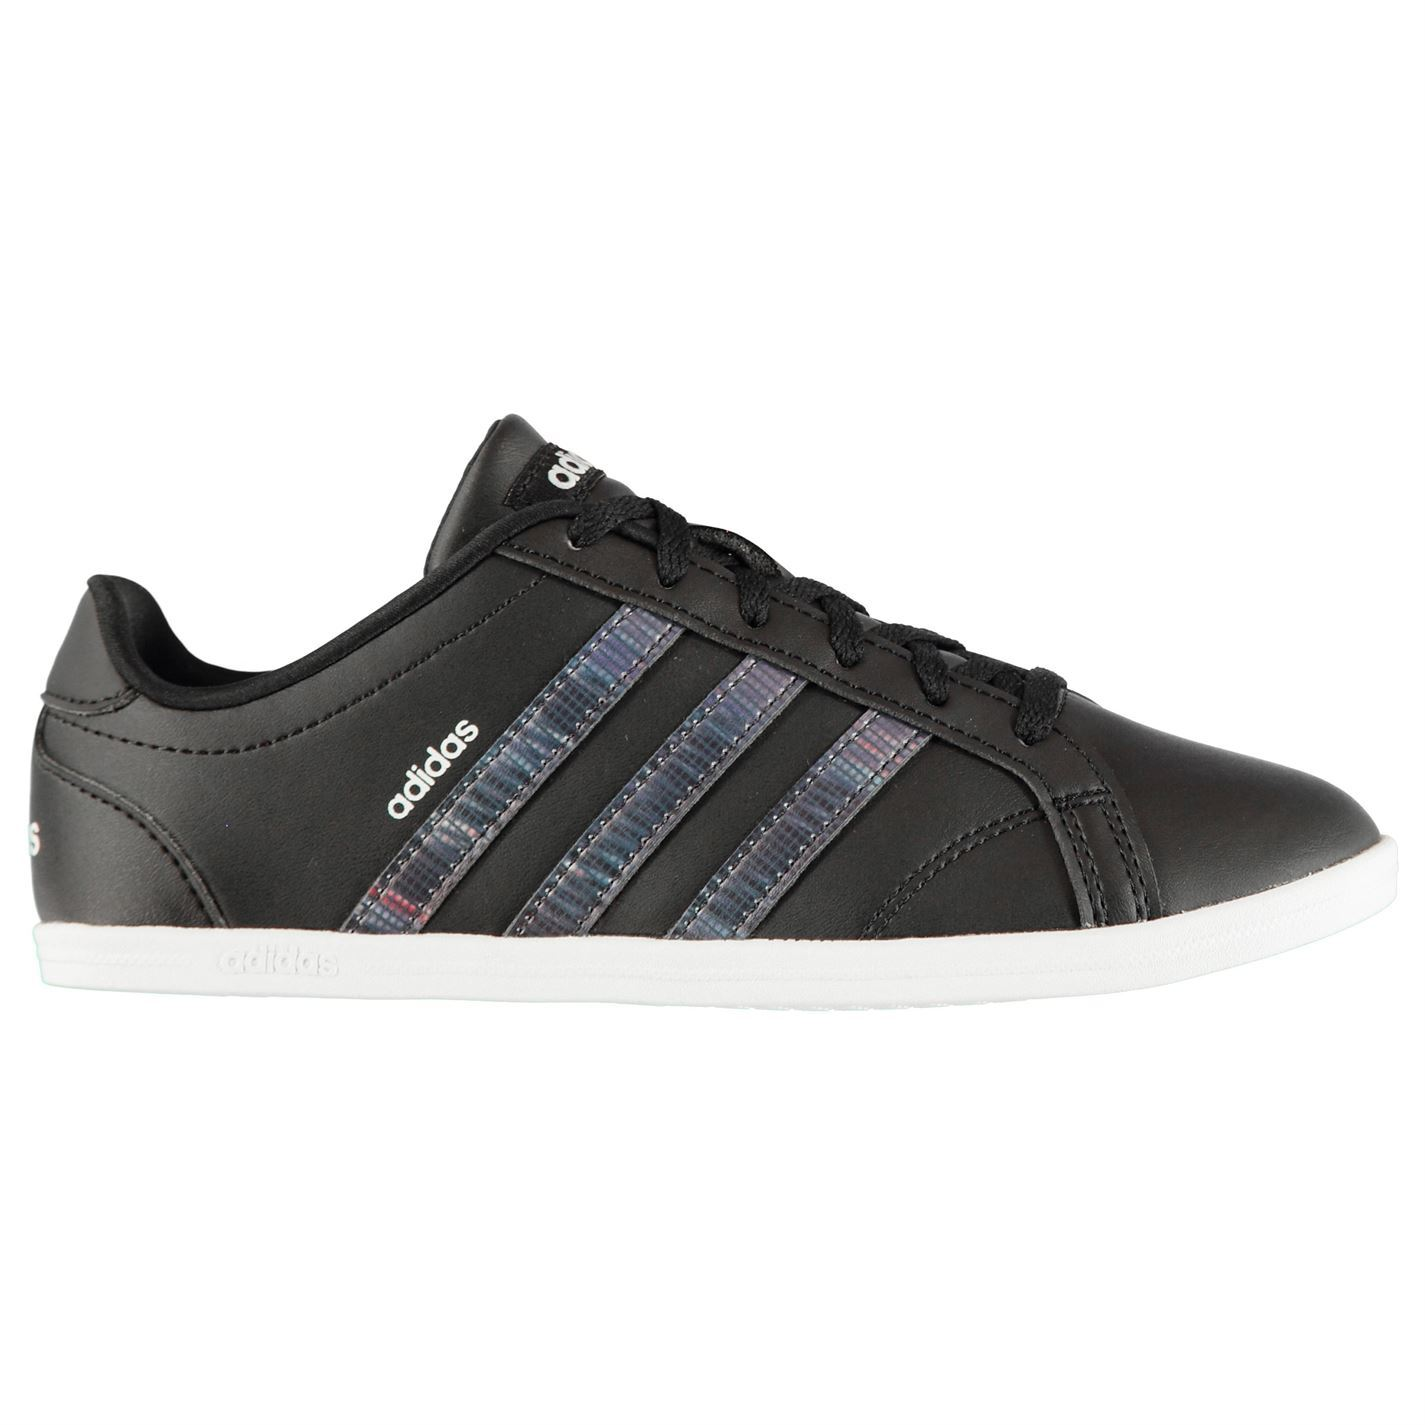 Details about adidas Coneo QT Womens Trainers Shoes Black Ladies Casual  Footwear